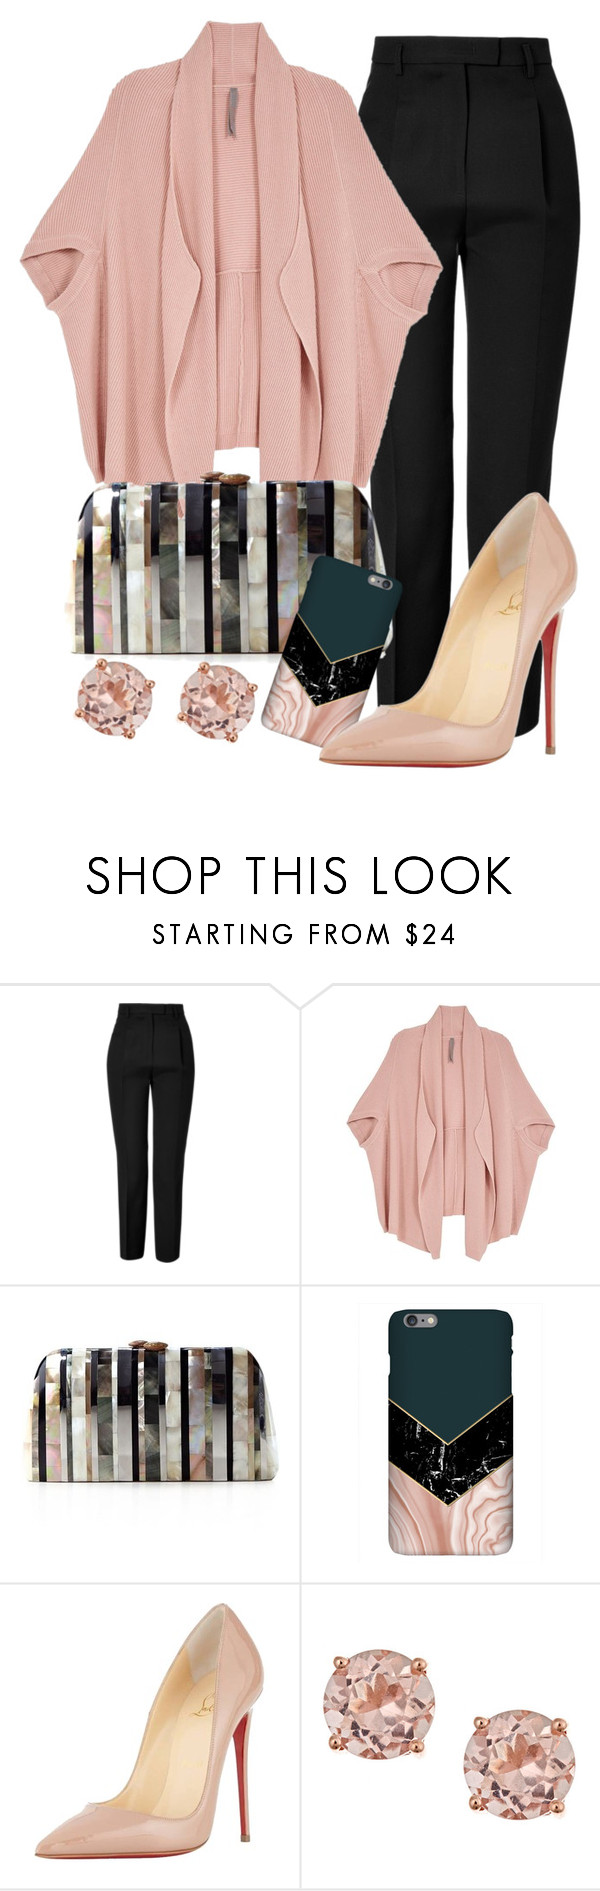 """Hmph"" by perichaze ❤ liked on Polyvore featuring Emilio Pucci, Melissa McCarthy Seven7, Serpui, Harper & Blake, Christian Louboutin and plus size clothing"